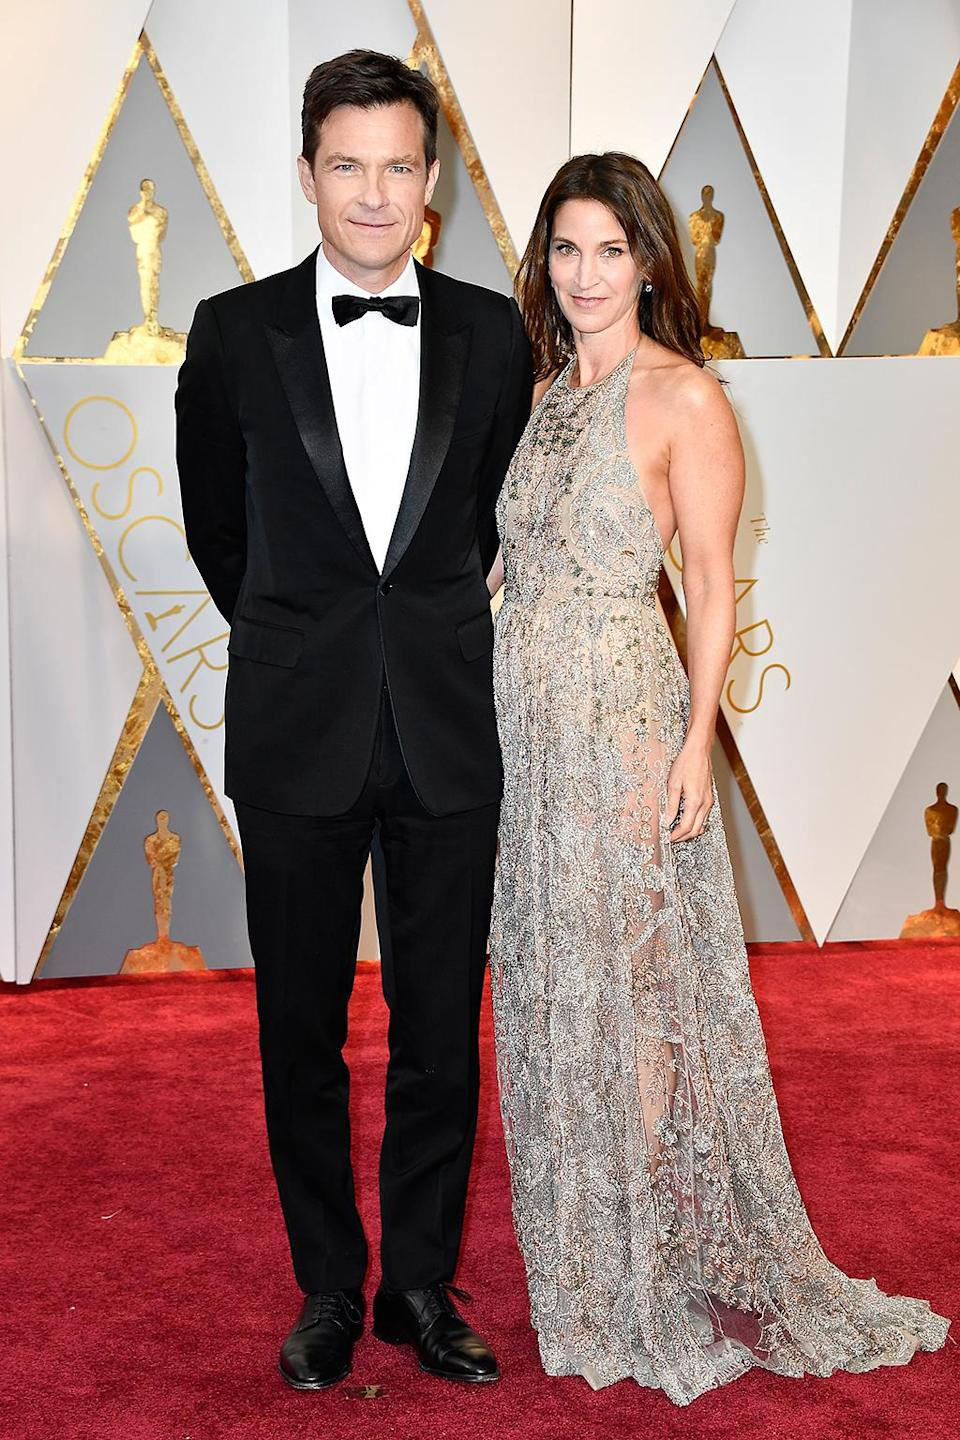 <p>Jason Bateman and Amanda Anka attend the 89th Annual Academy Awards at Hollywood & Highland Center on Feb. 26, 2017. (Photo by Frazer Harrison/Getty Images) </p>